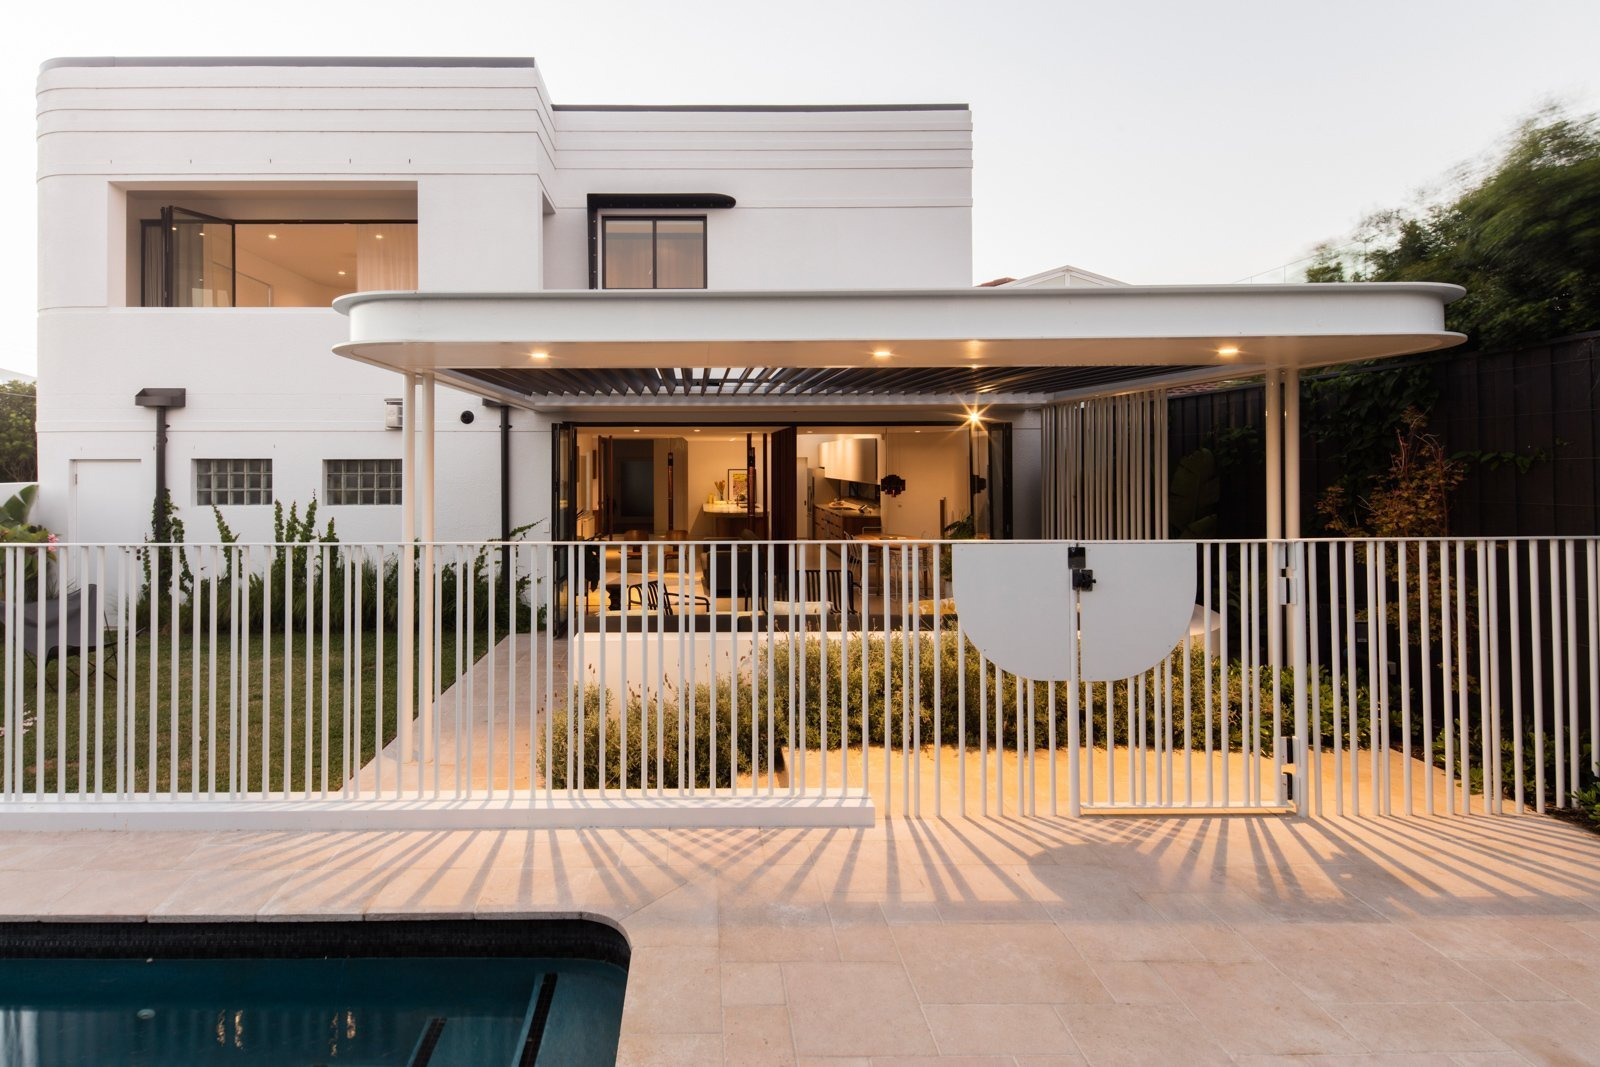 Outdoor, Front Yard, Trees, Stone Patio, Porch, Deck, and Metal Fences, Wall  Conway Atkins House from A Heritage Art Deco House in Australia Gets a Modern Update